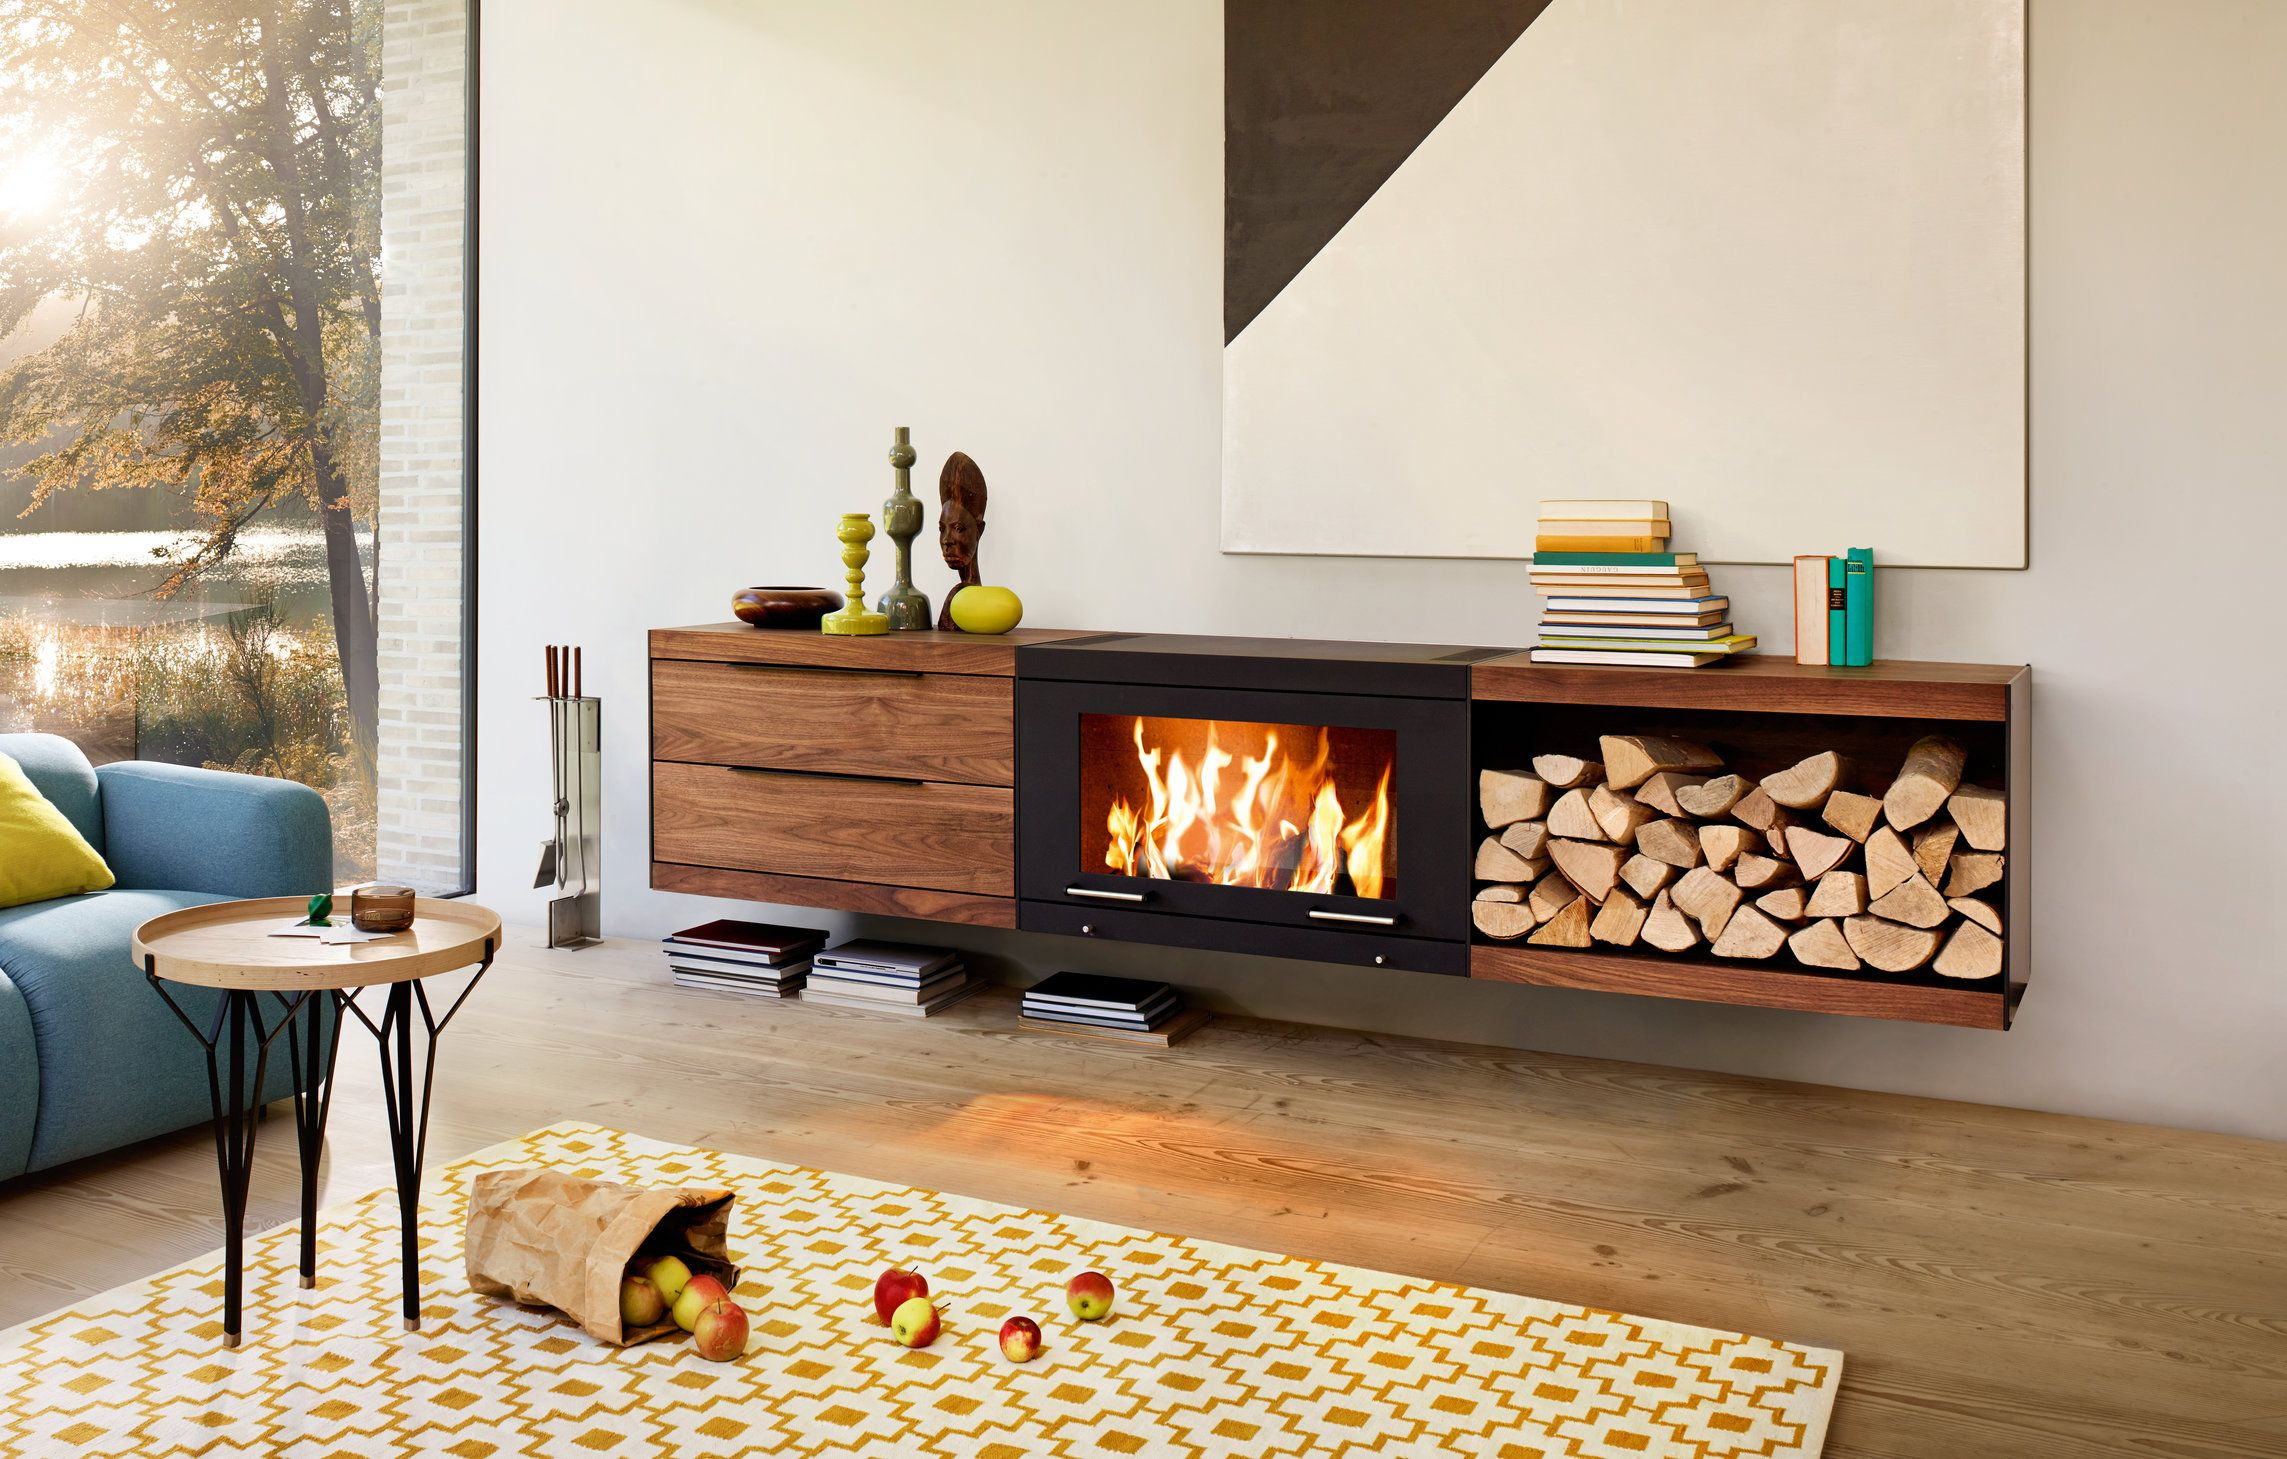 balance 7kw log burning stove designed by peter maly for skantherm germany minimalist design. Black Bedroom Furniture Sets. Home Design Ideas